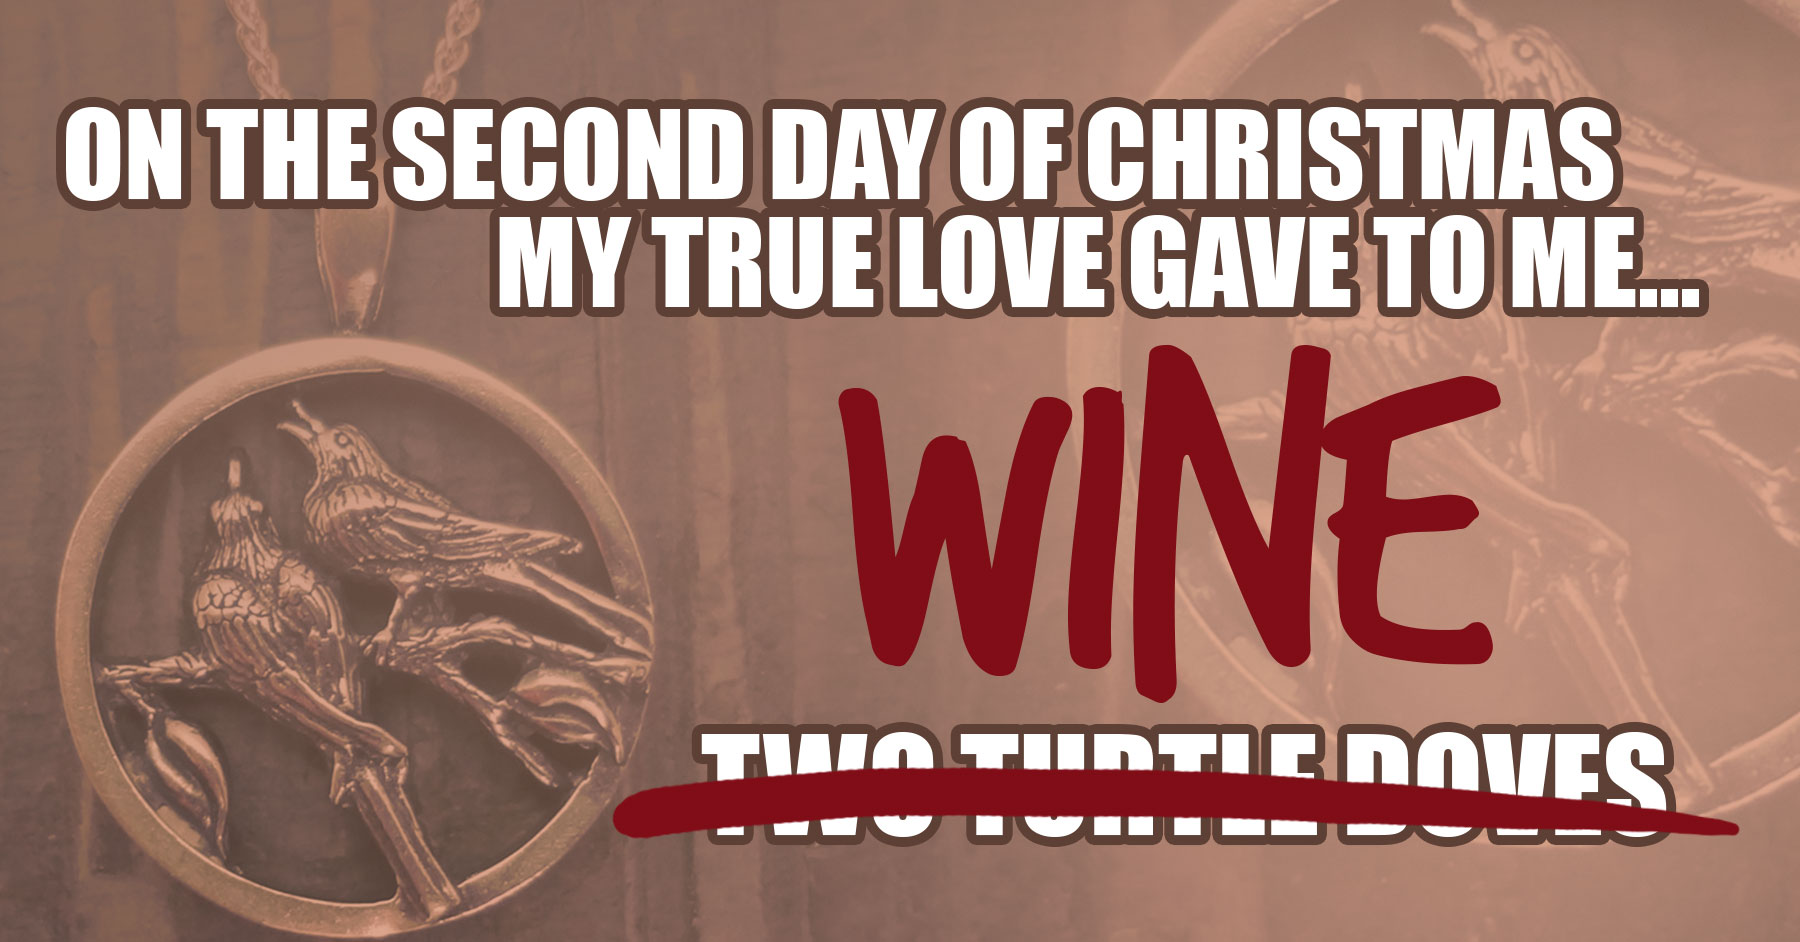 12 days of Christmas. Two turtle doves. wine